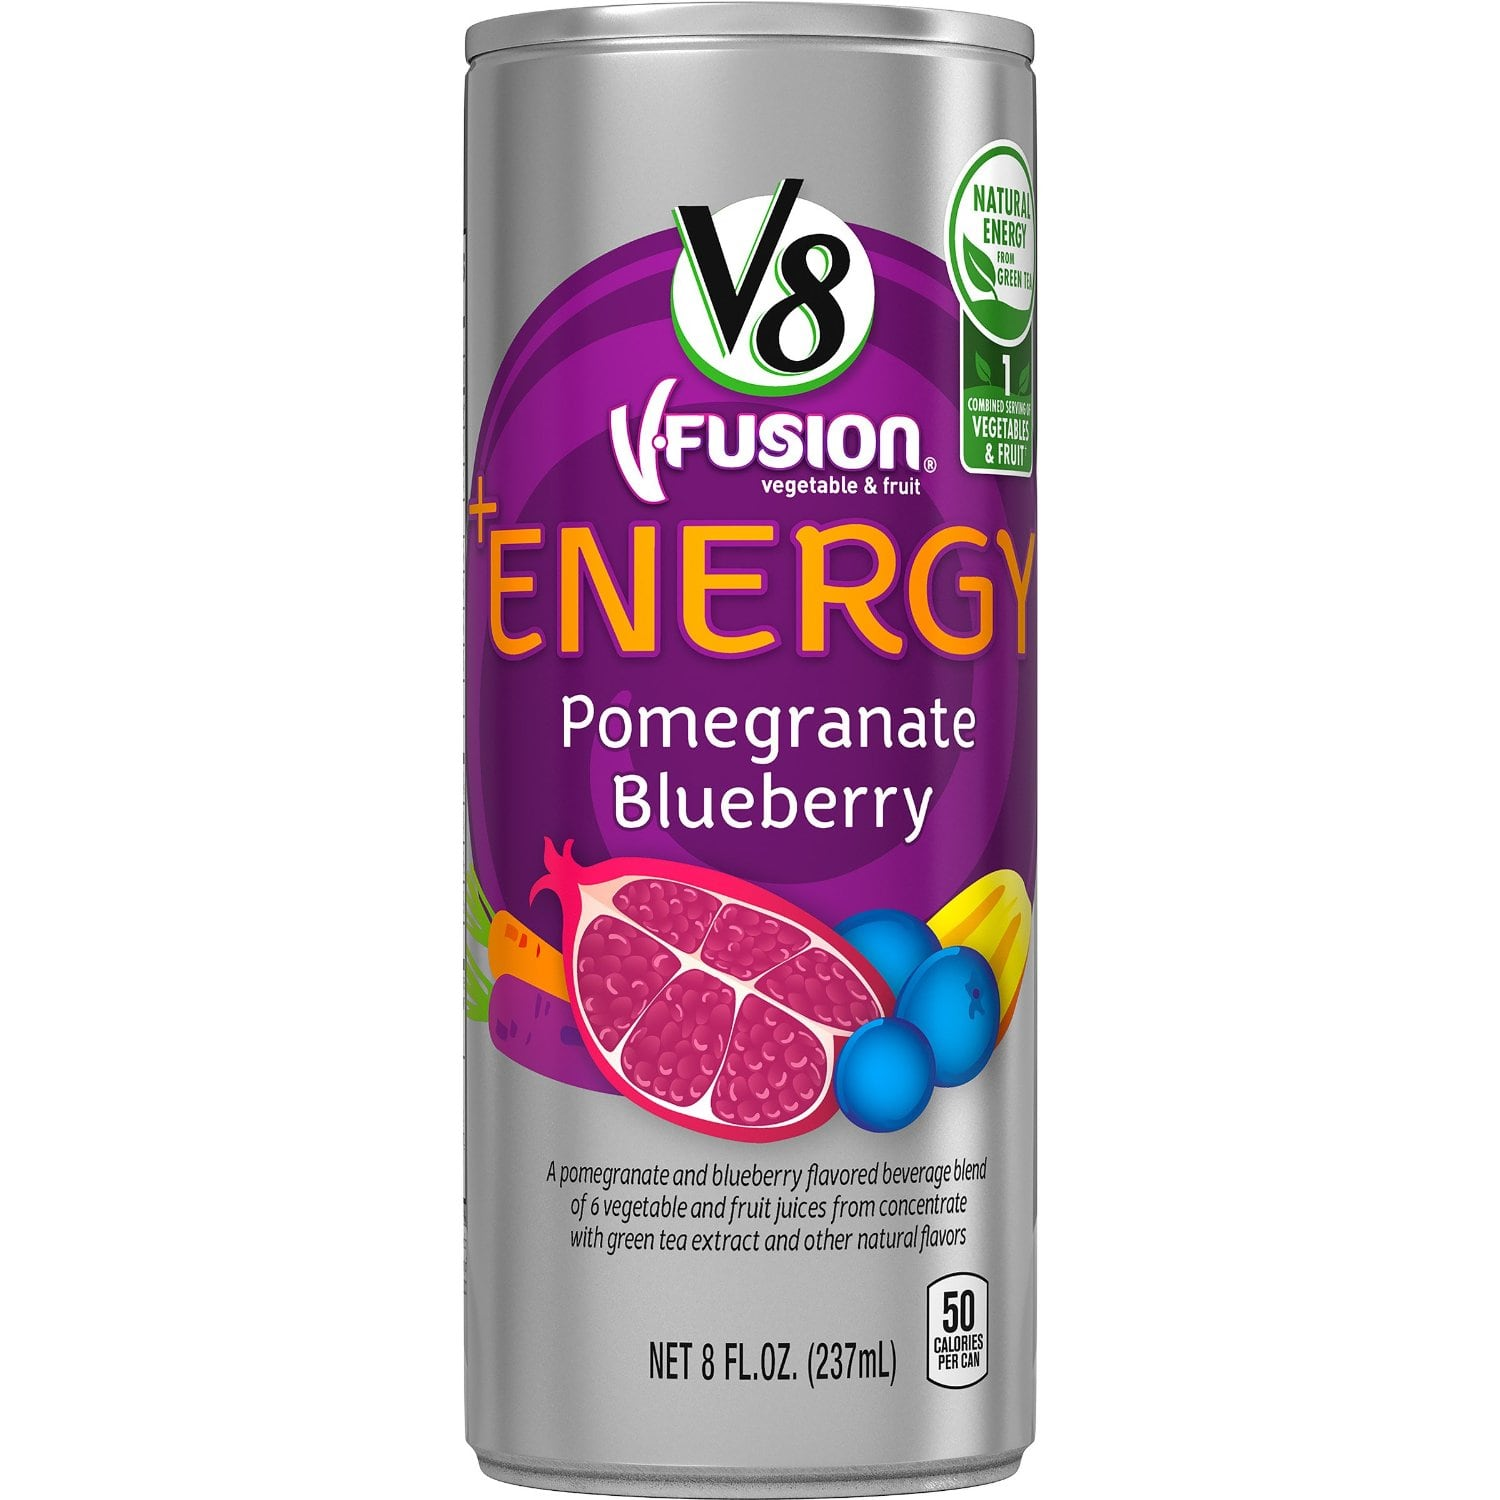 Prime Members: 24-Pack of 8oz V8 V-Fusion +Energy Drink $8.75 + Free Shipping